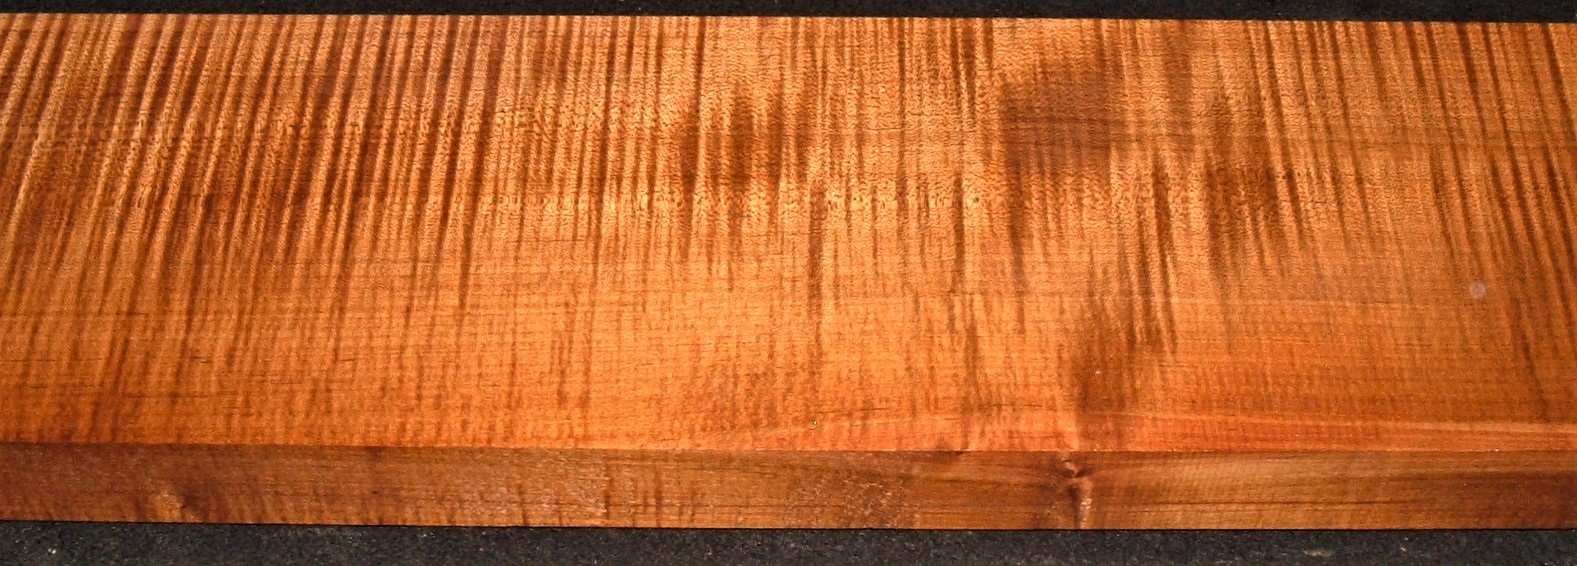 QRM2010-343JK, 1-7/8x7-1/4x53, Quartersawn Roasted Curly Maple